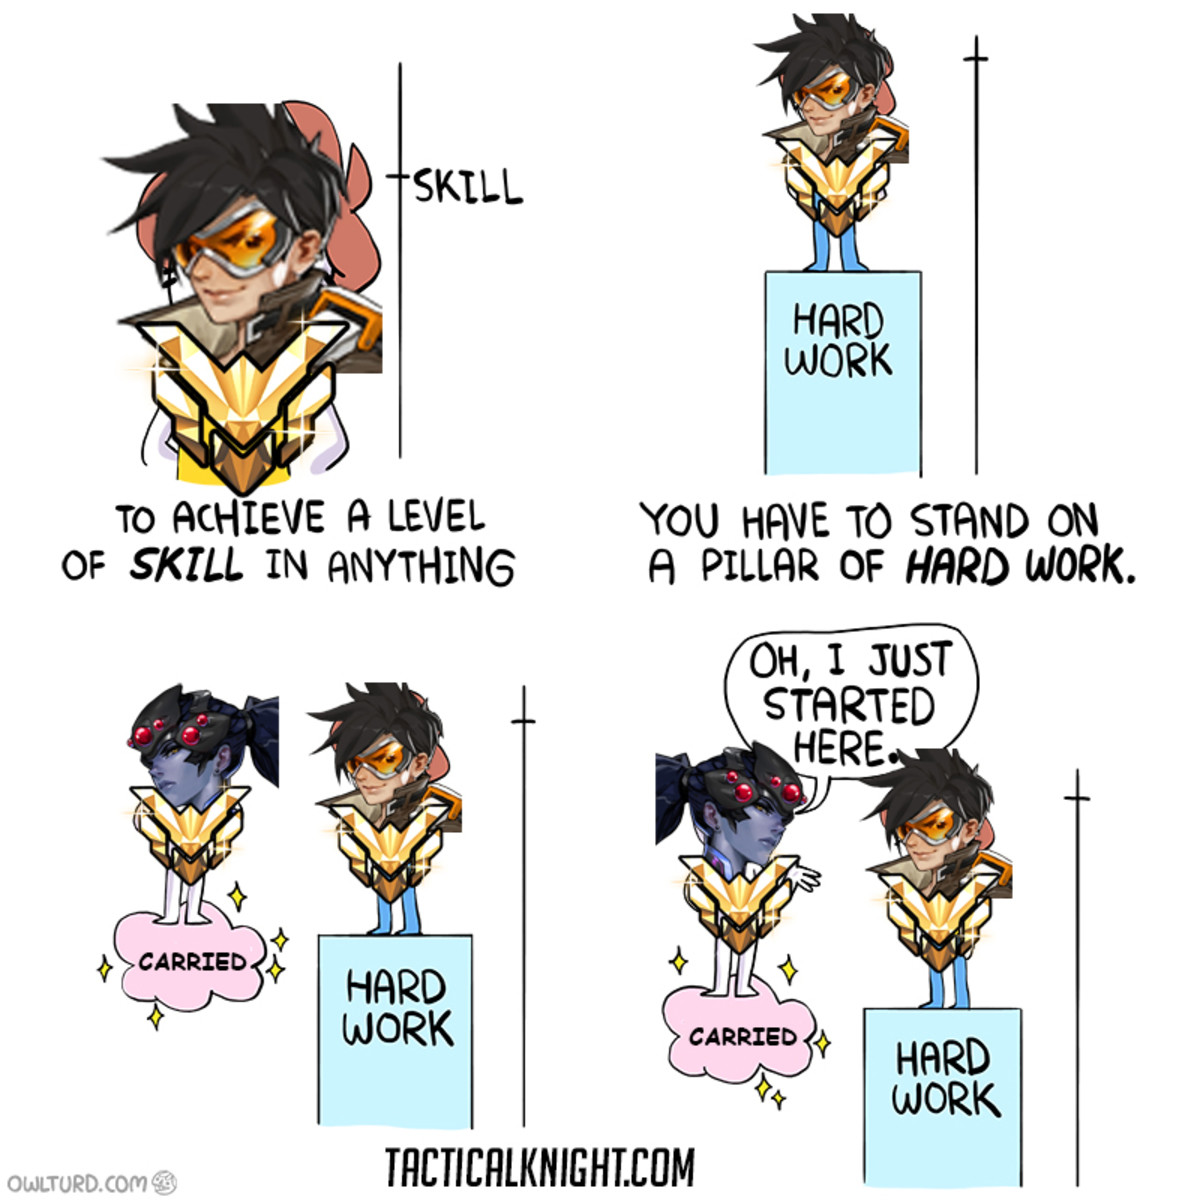 Overwatch Competitive In A Nutshell. You can find the original image at my website https://tacticalknight.com/ I have video 100% proof that Overwatch is rigged